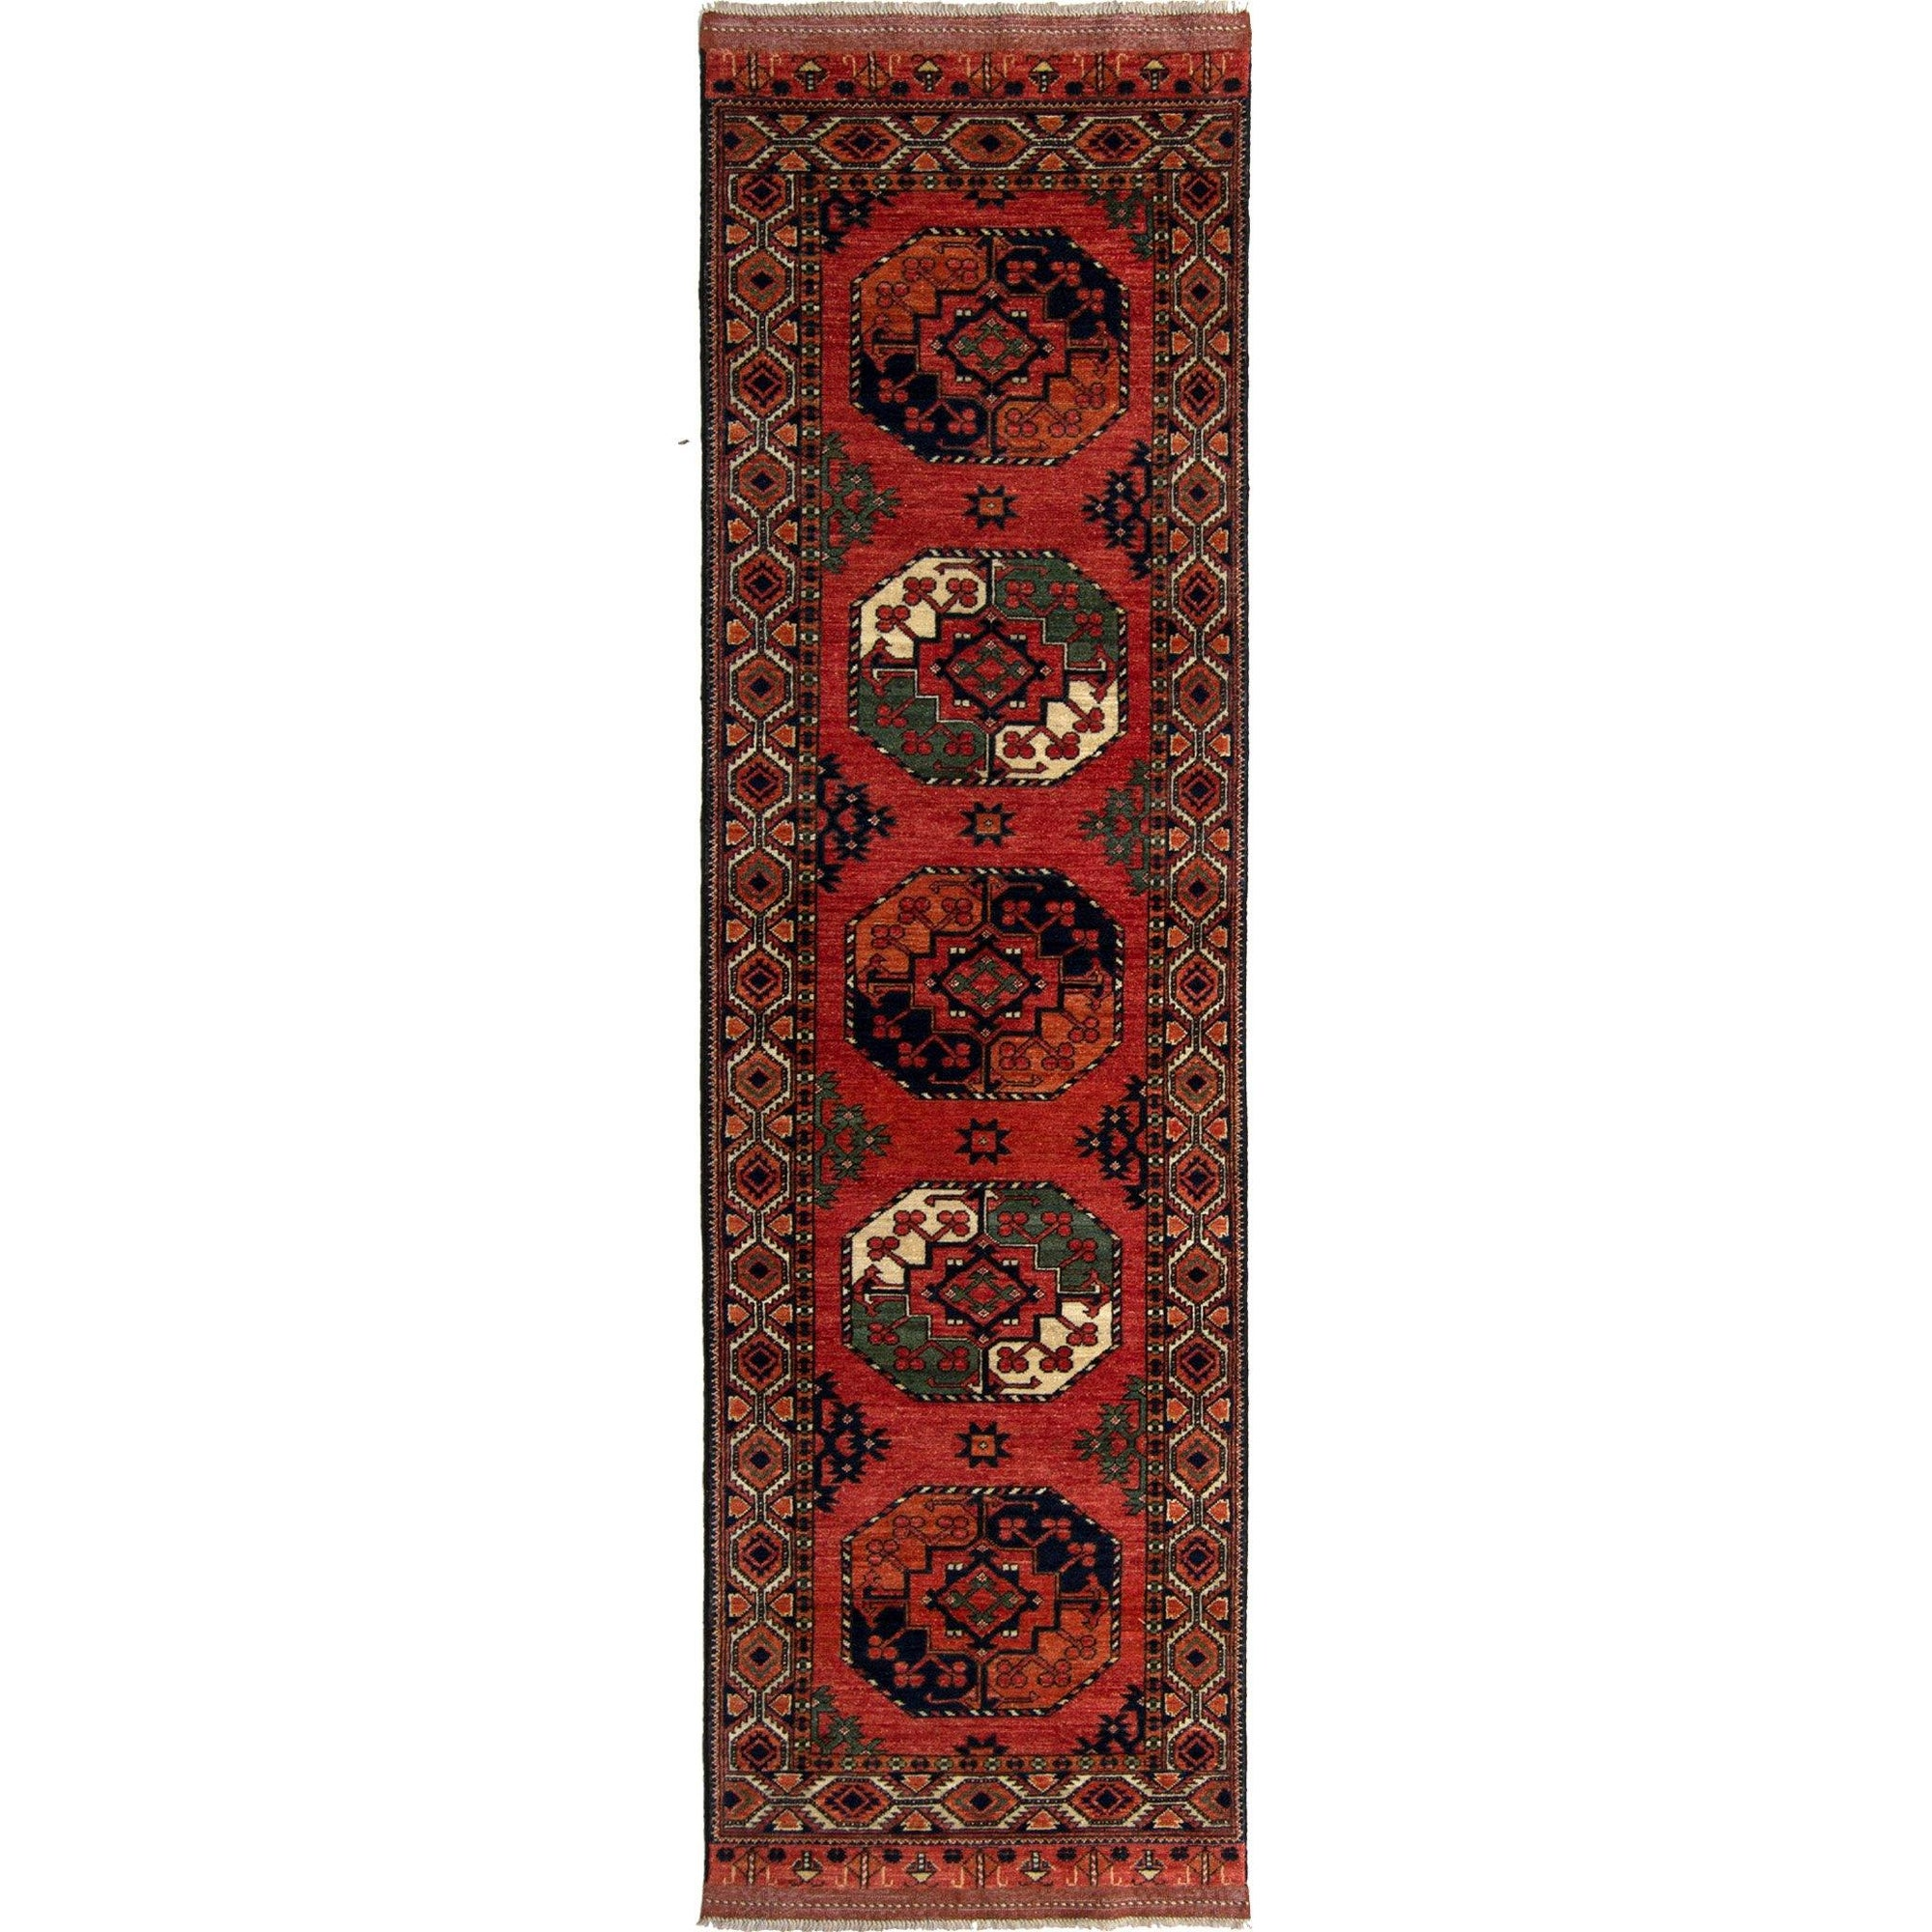 Fine Hand-knotted Tribal Wool Runner 86cm x 290cm Persian-Rug | House-of-Haghi | NewMarket | Auckland | NZ | Handmade Persian Rugs | Hand Knotted Persian Rugs